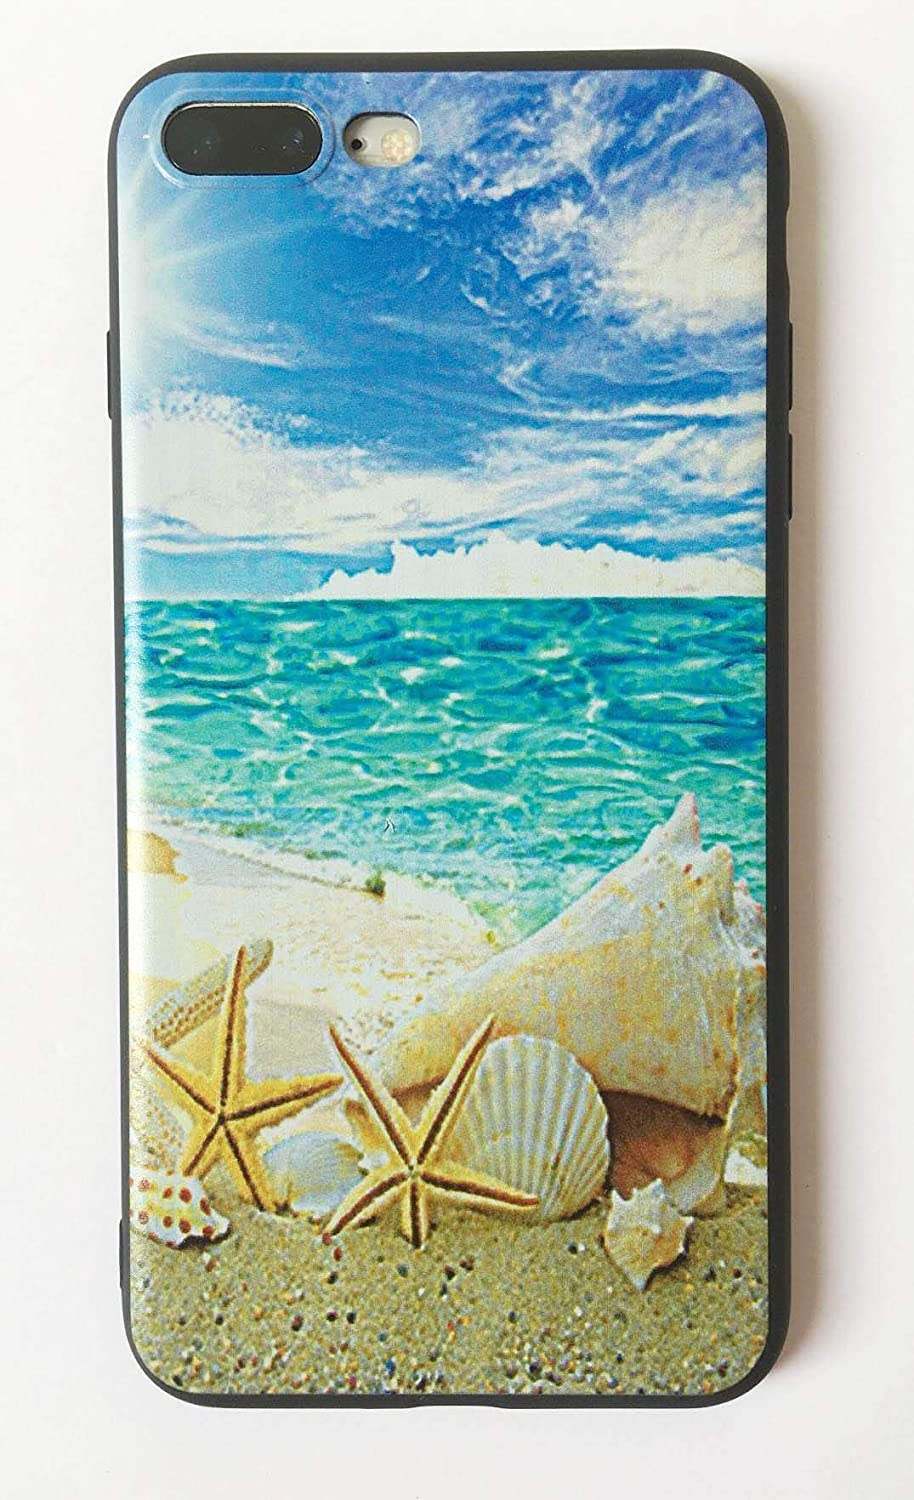 Beach and Seashells iPhone 7PLUS /8 Plus Case,Soft Silicone TPU Shock Absorption Bumper Protective Case for iPhone 7PLUS /8 Plus